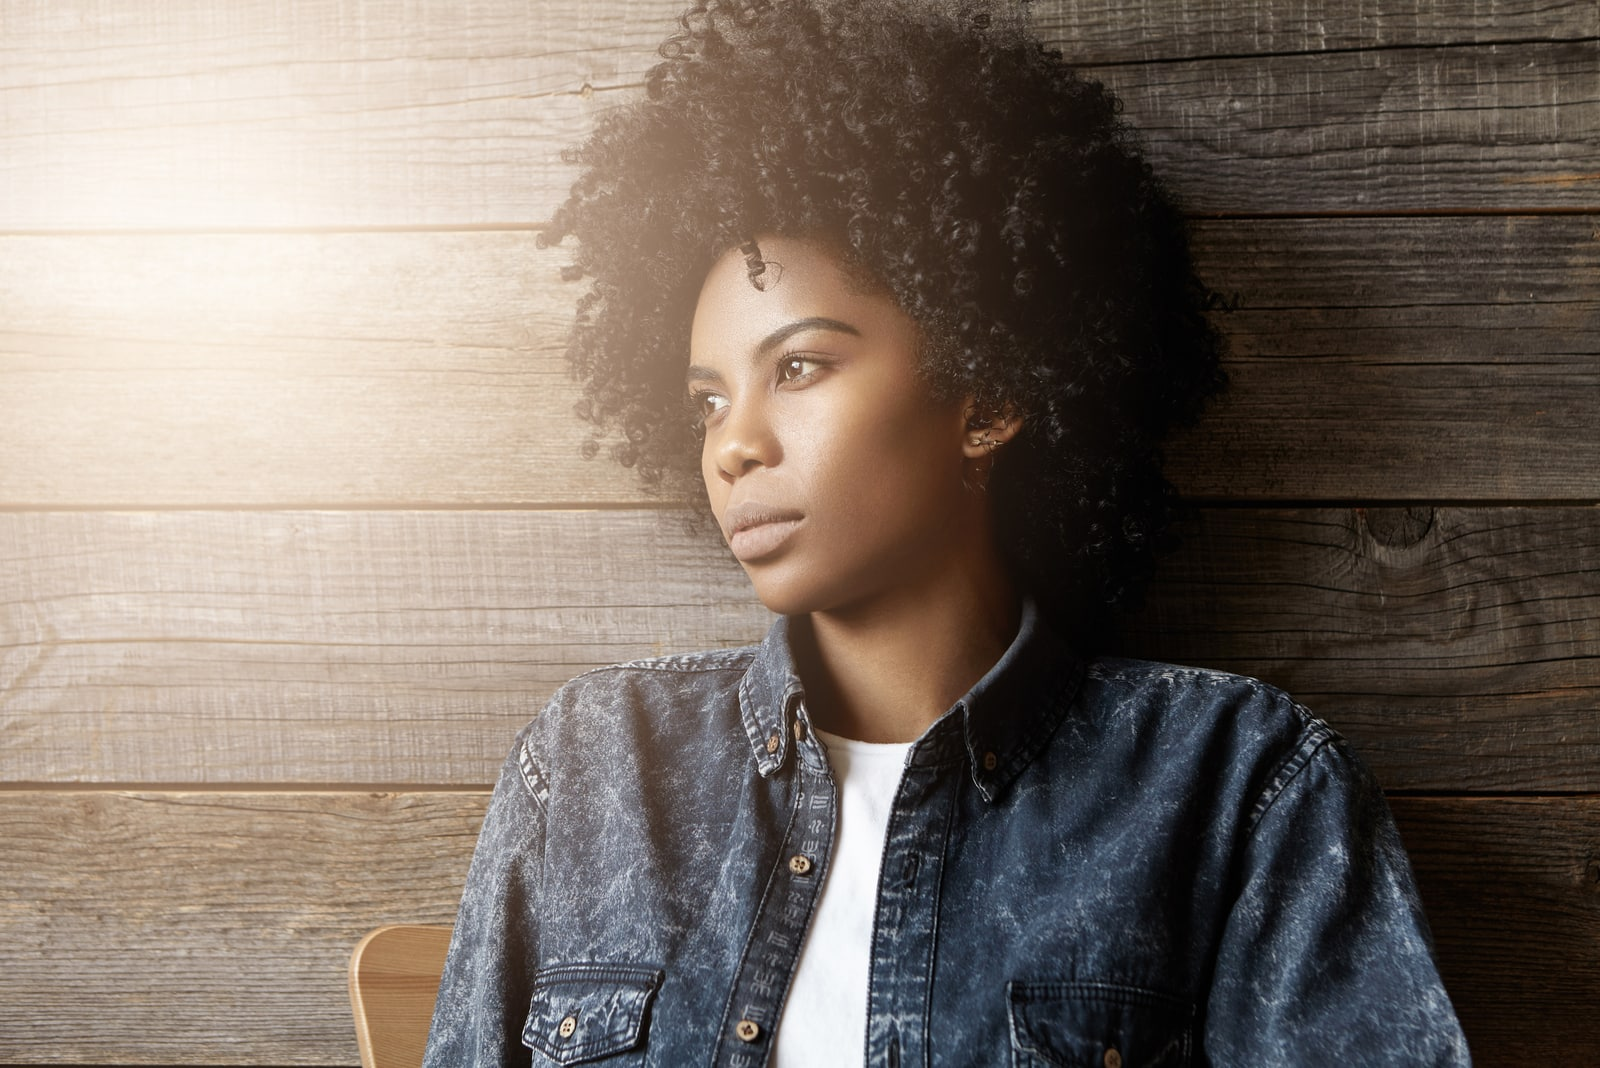 a woman with frizzy hair is sitting